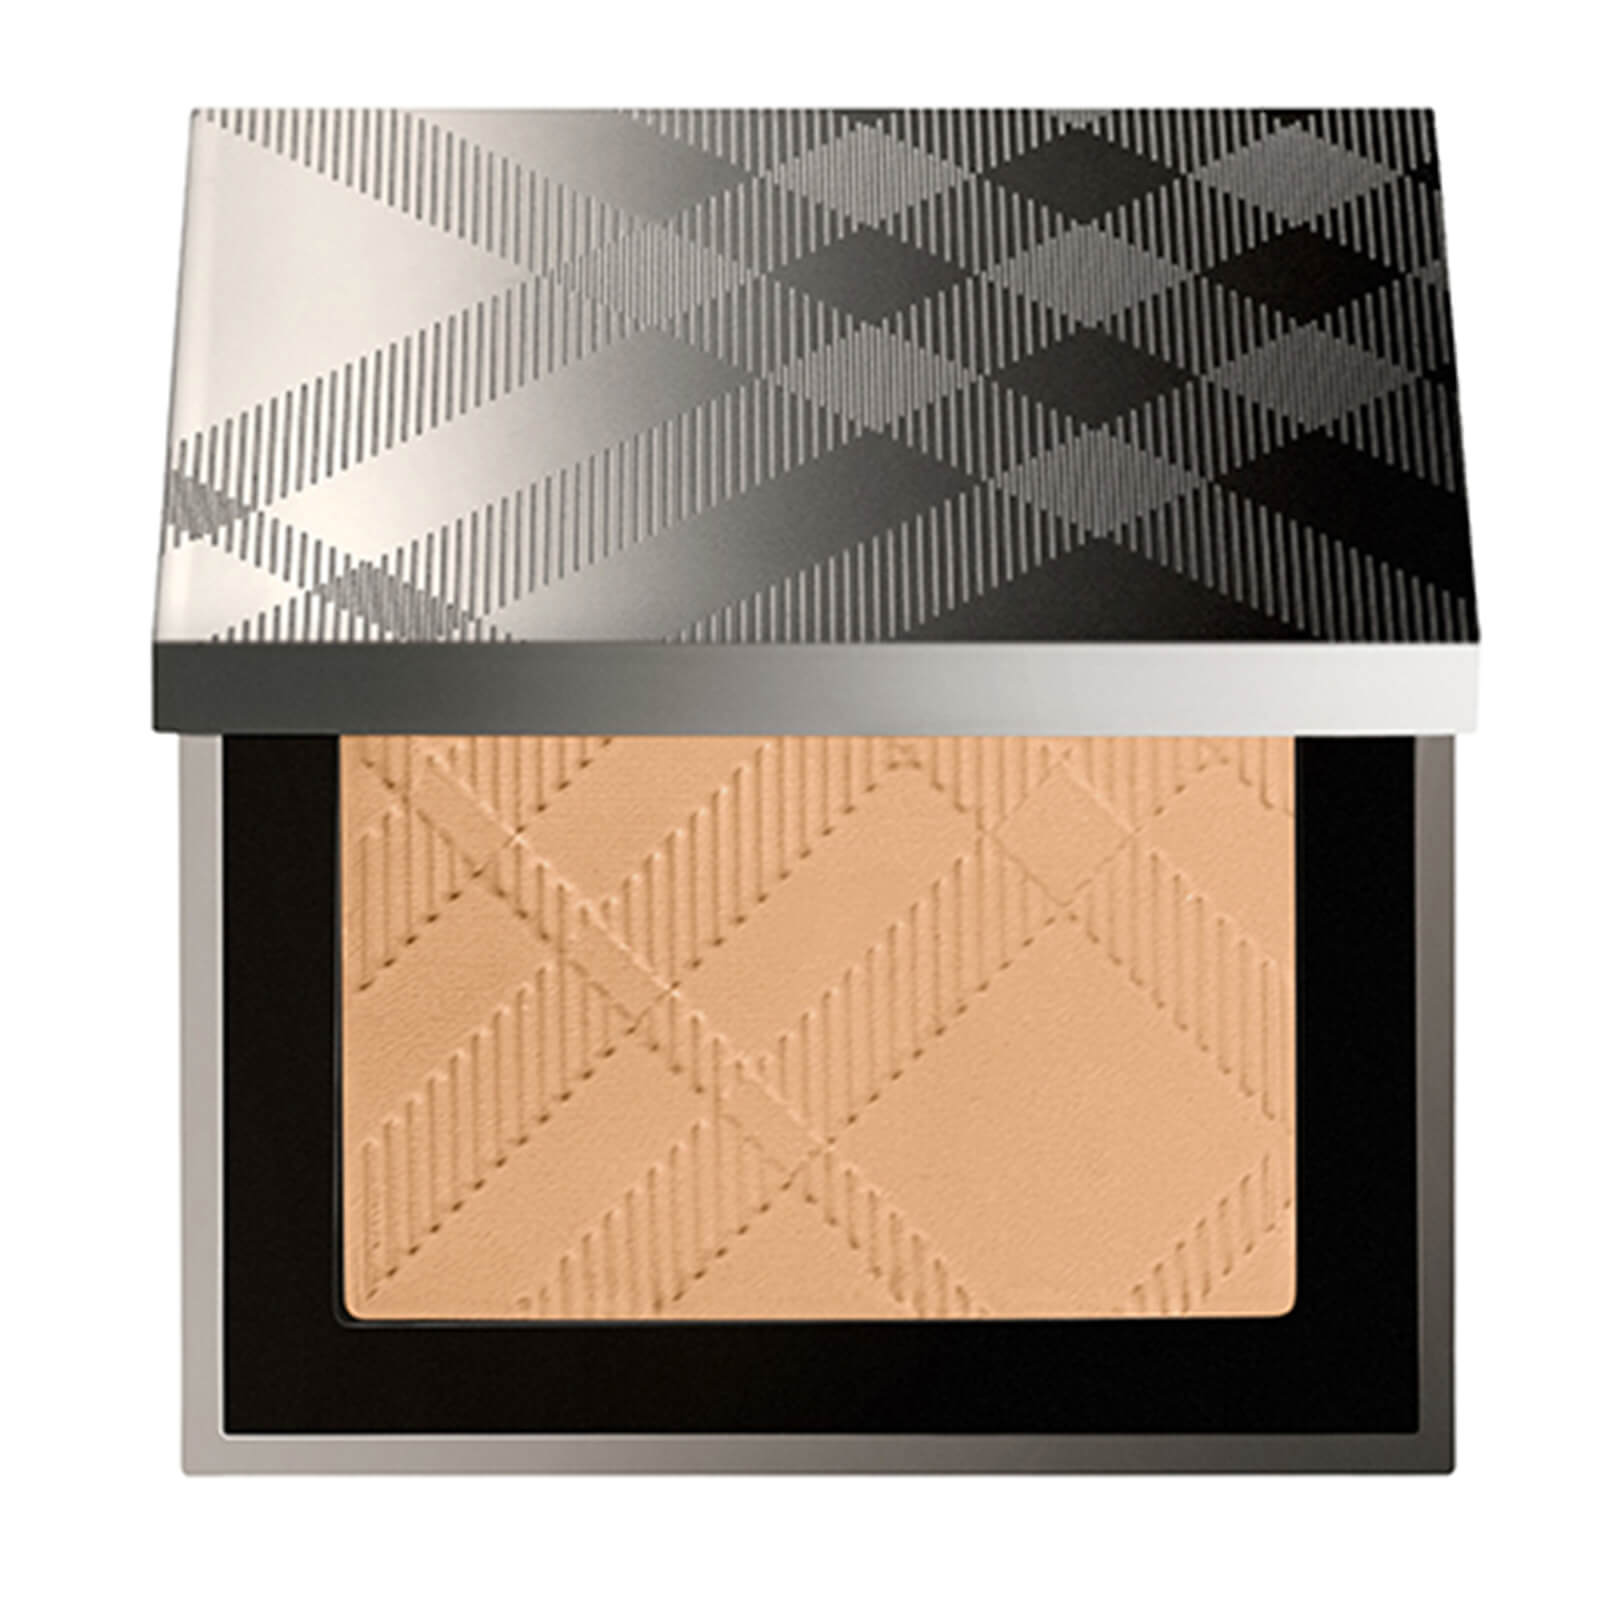 Burberry Nude Powder 8g (Various Shades) - No. 12 Ochre Nude